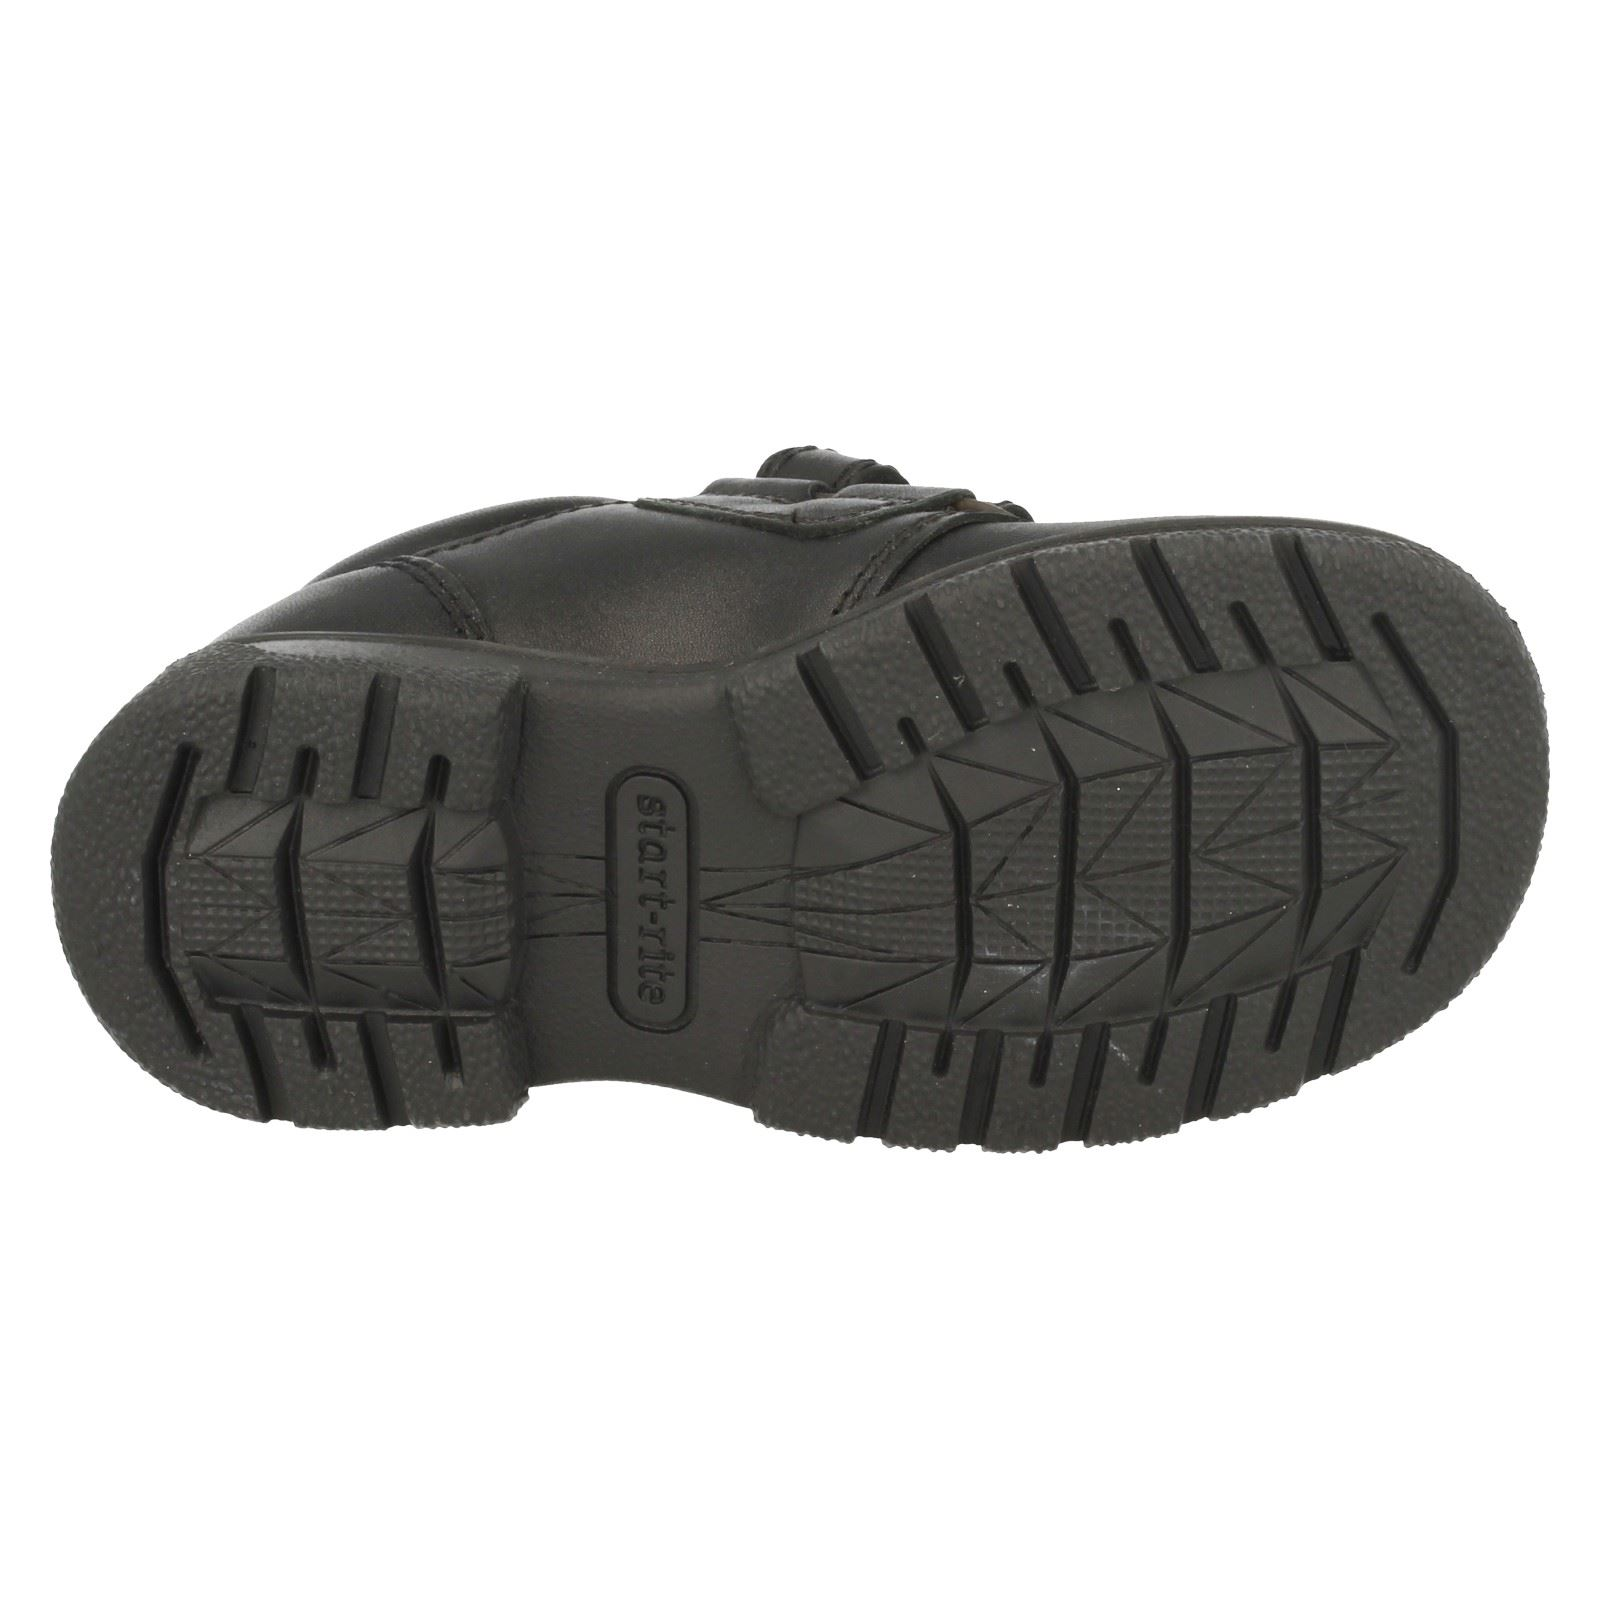 Boys Startrite Formal School Shoes Rotate